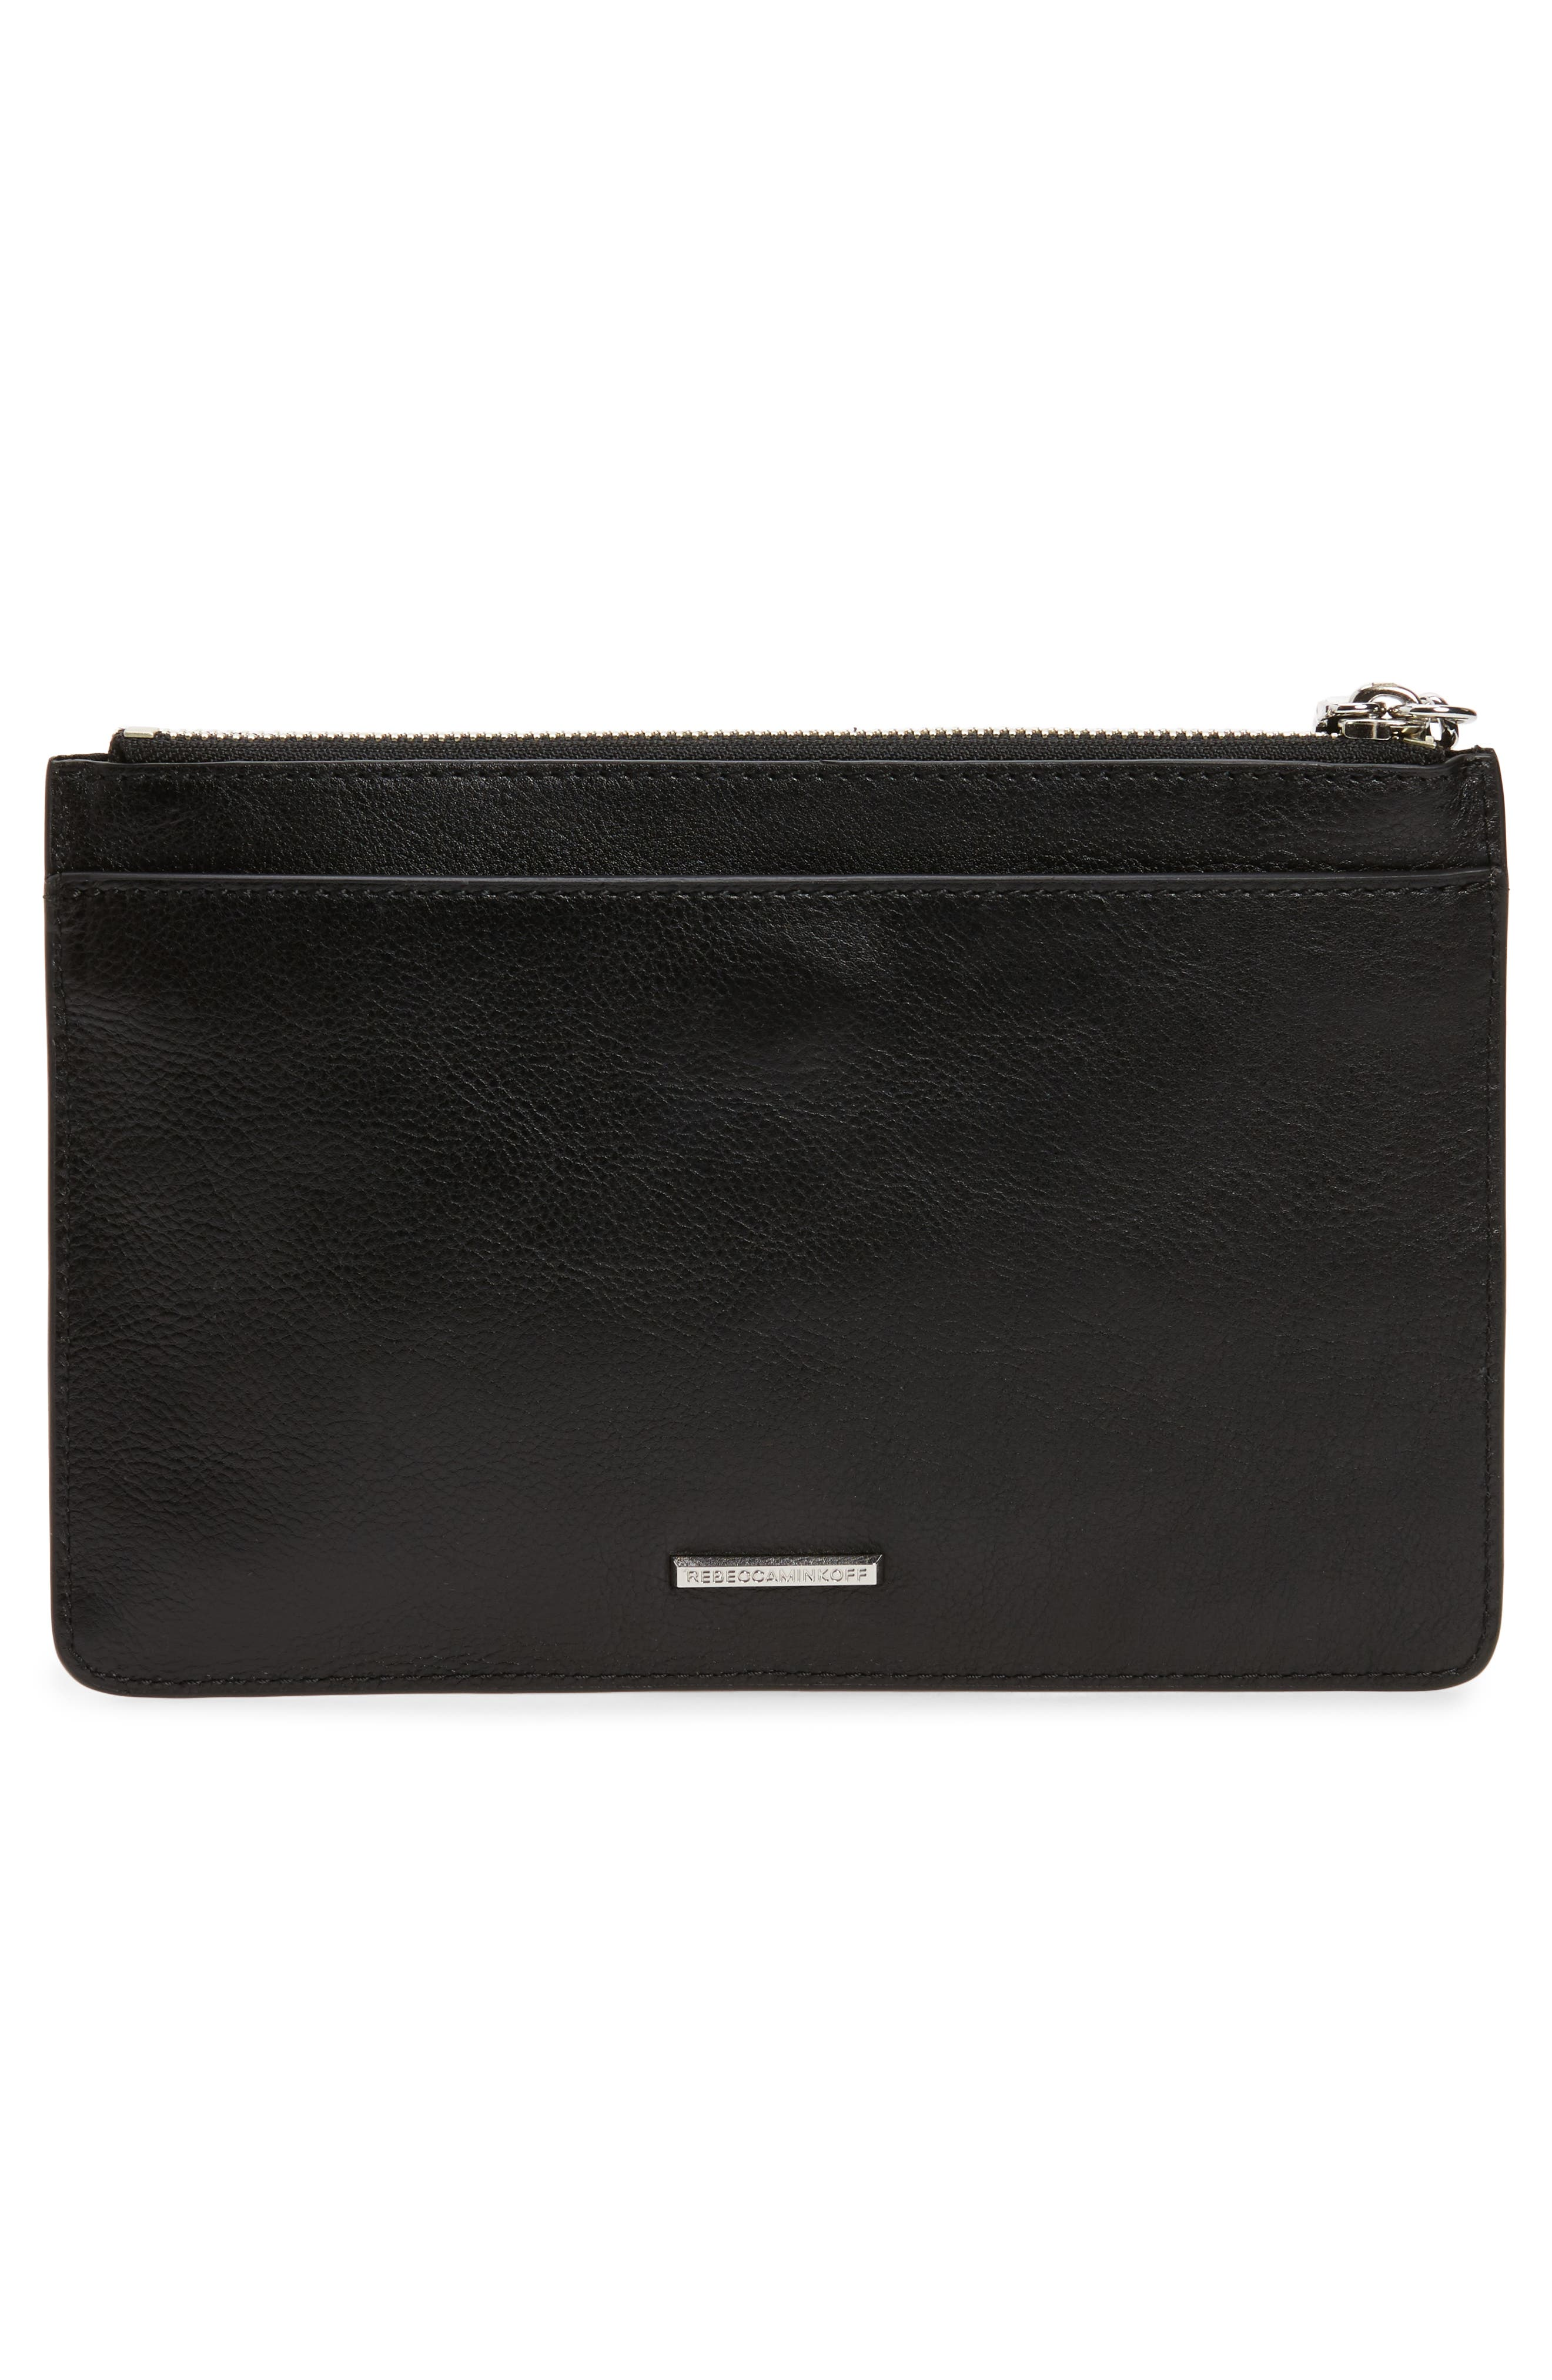 Alternate Image 3  - Rebecca Minkoff Leather Wristlet Pouch